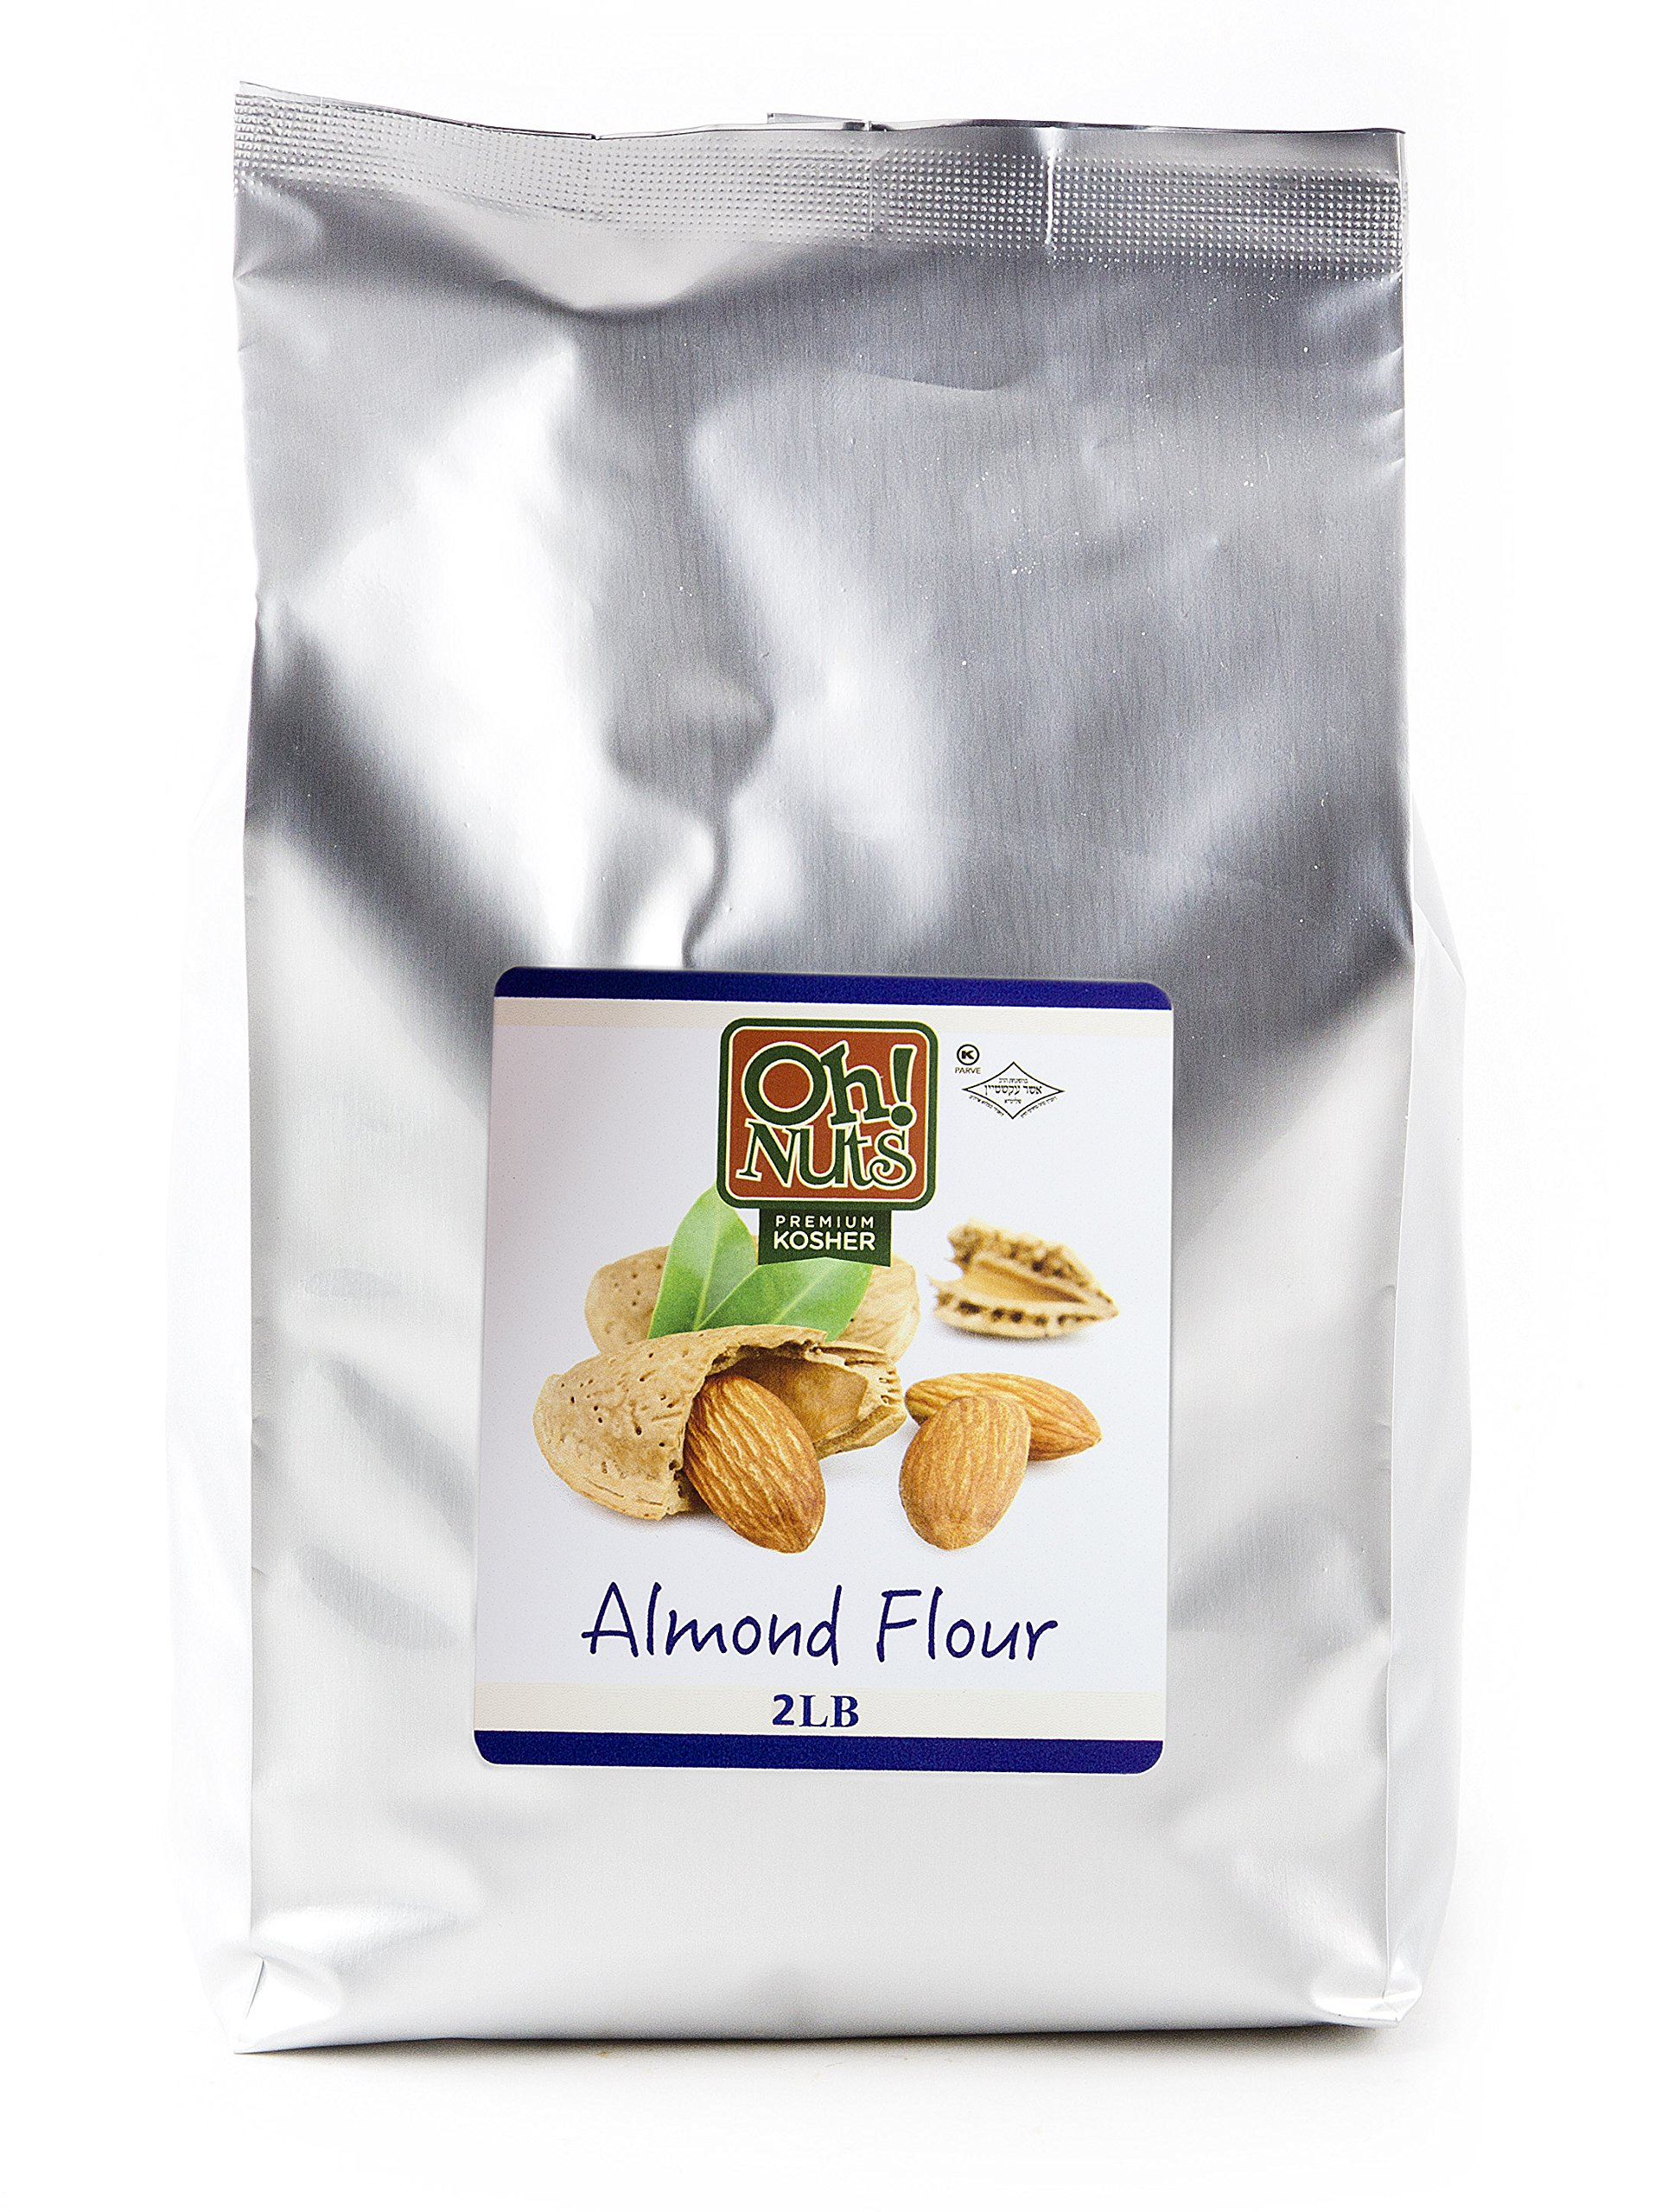 Almond Flour, UNBLANCHED Almonds Healthy Meal, Extra Fine Ground Almonds - Oh! Nuts (2 LB Bag Natural Whole Almond Flour)